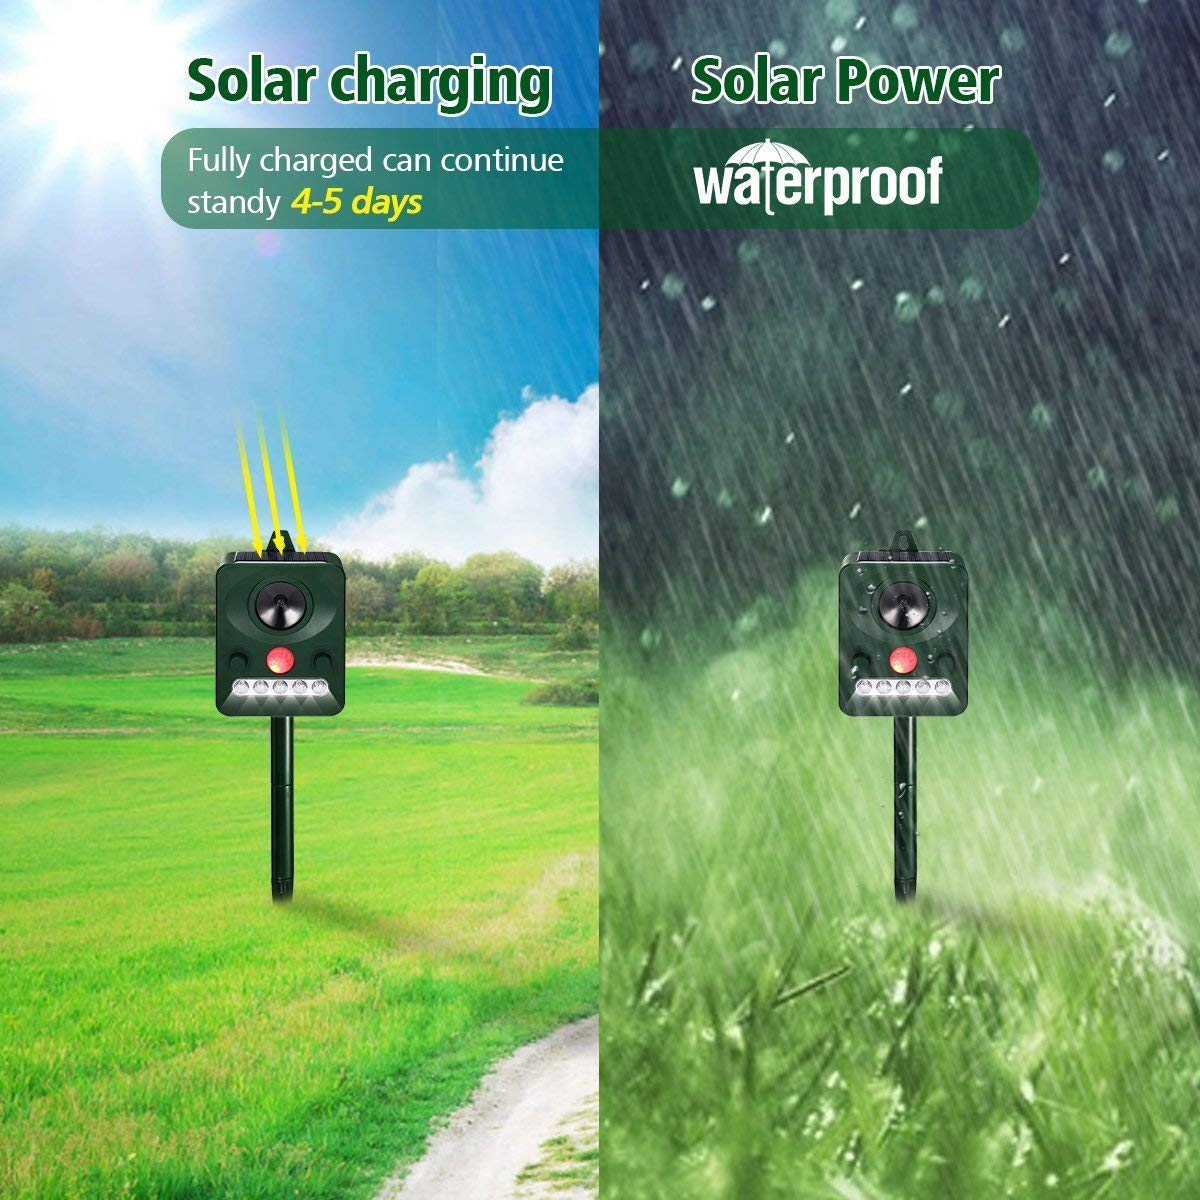 Outdoor Waterproof Solar Powered Ultrasonic Animal Repeller with PIR Sensor Protect Your Yard Lawn Garden